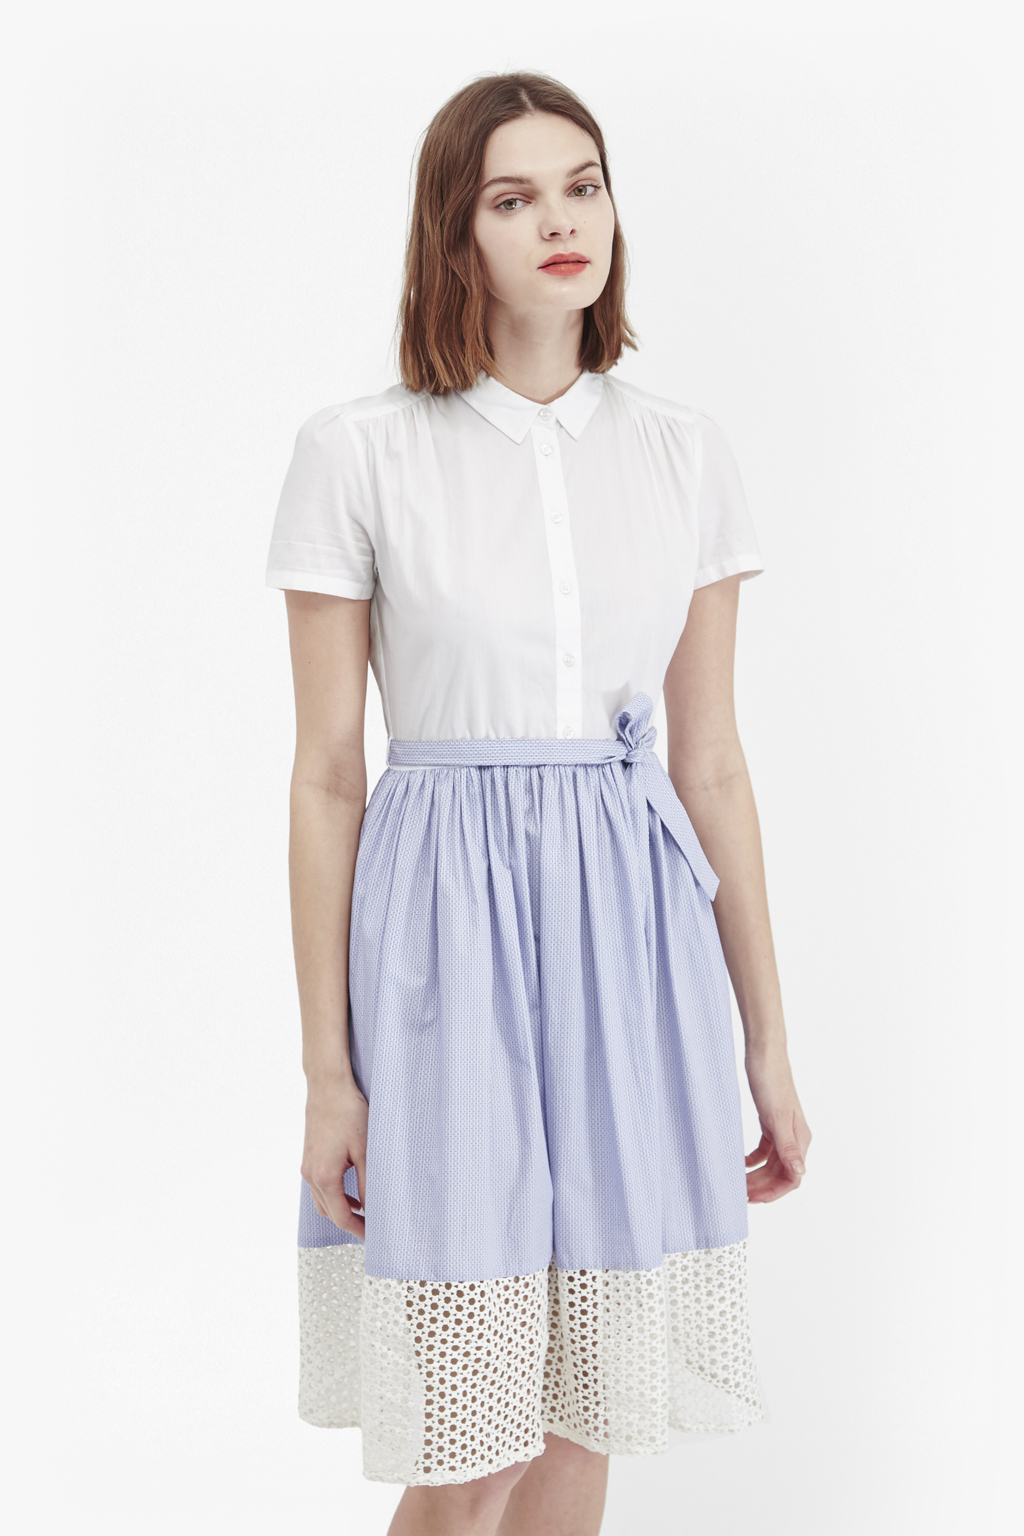 French connection kyra cotton shirt dress in white blue for French connection shirt dress